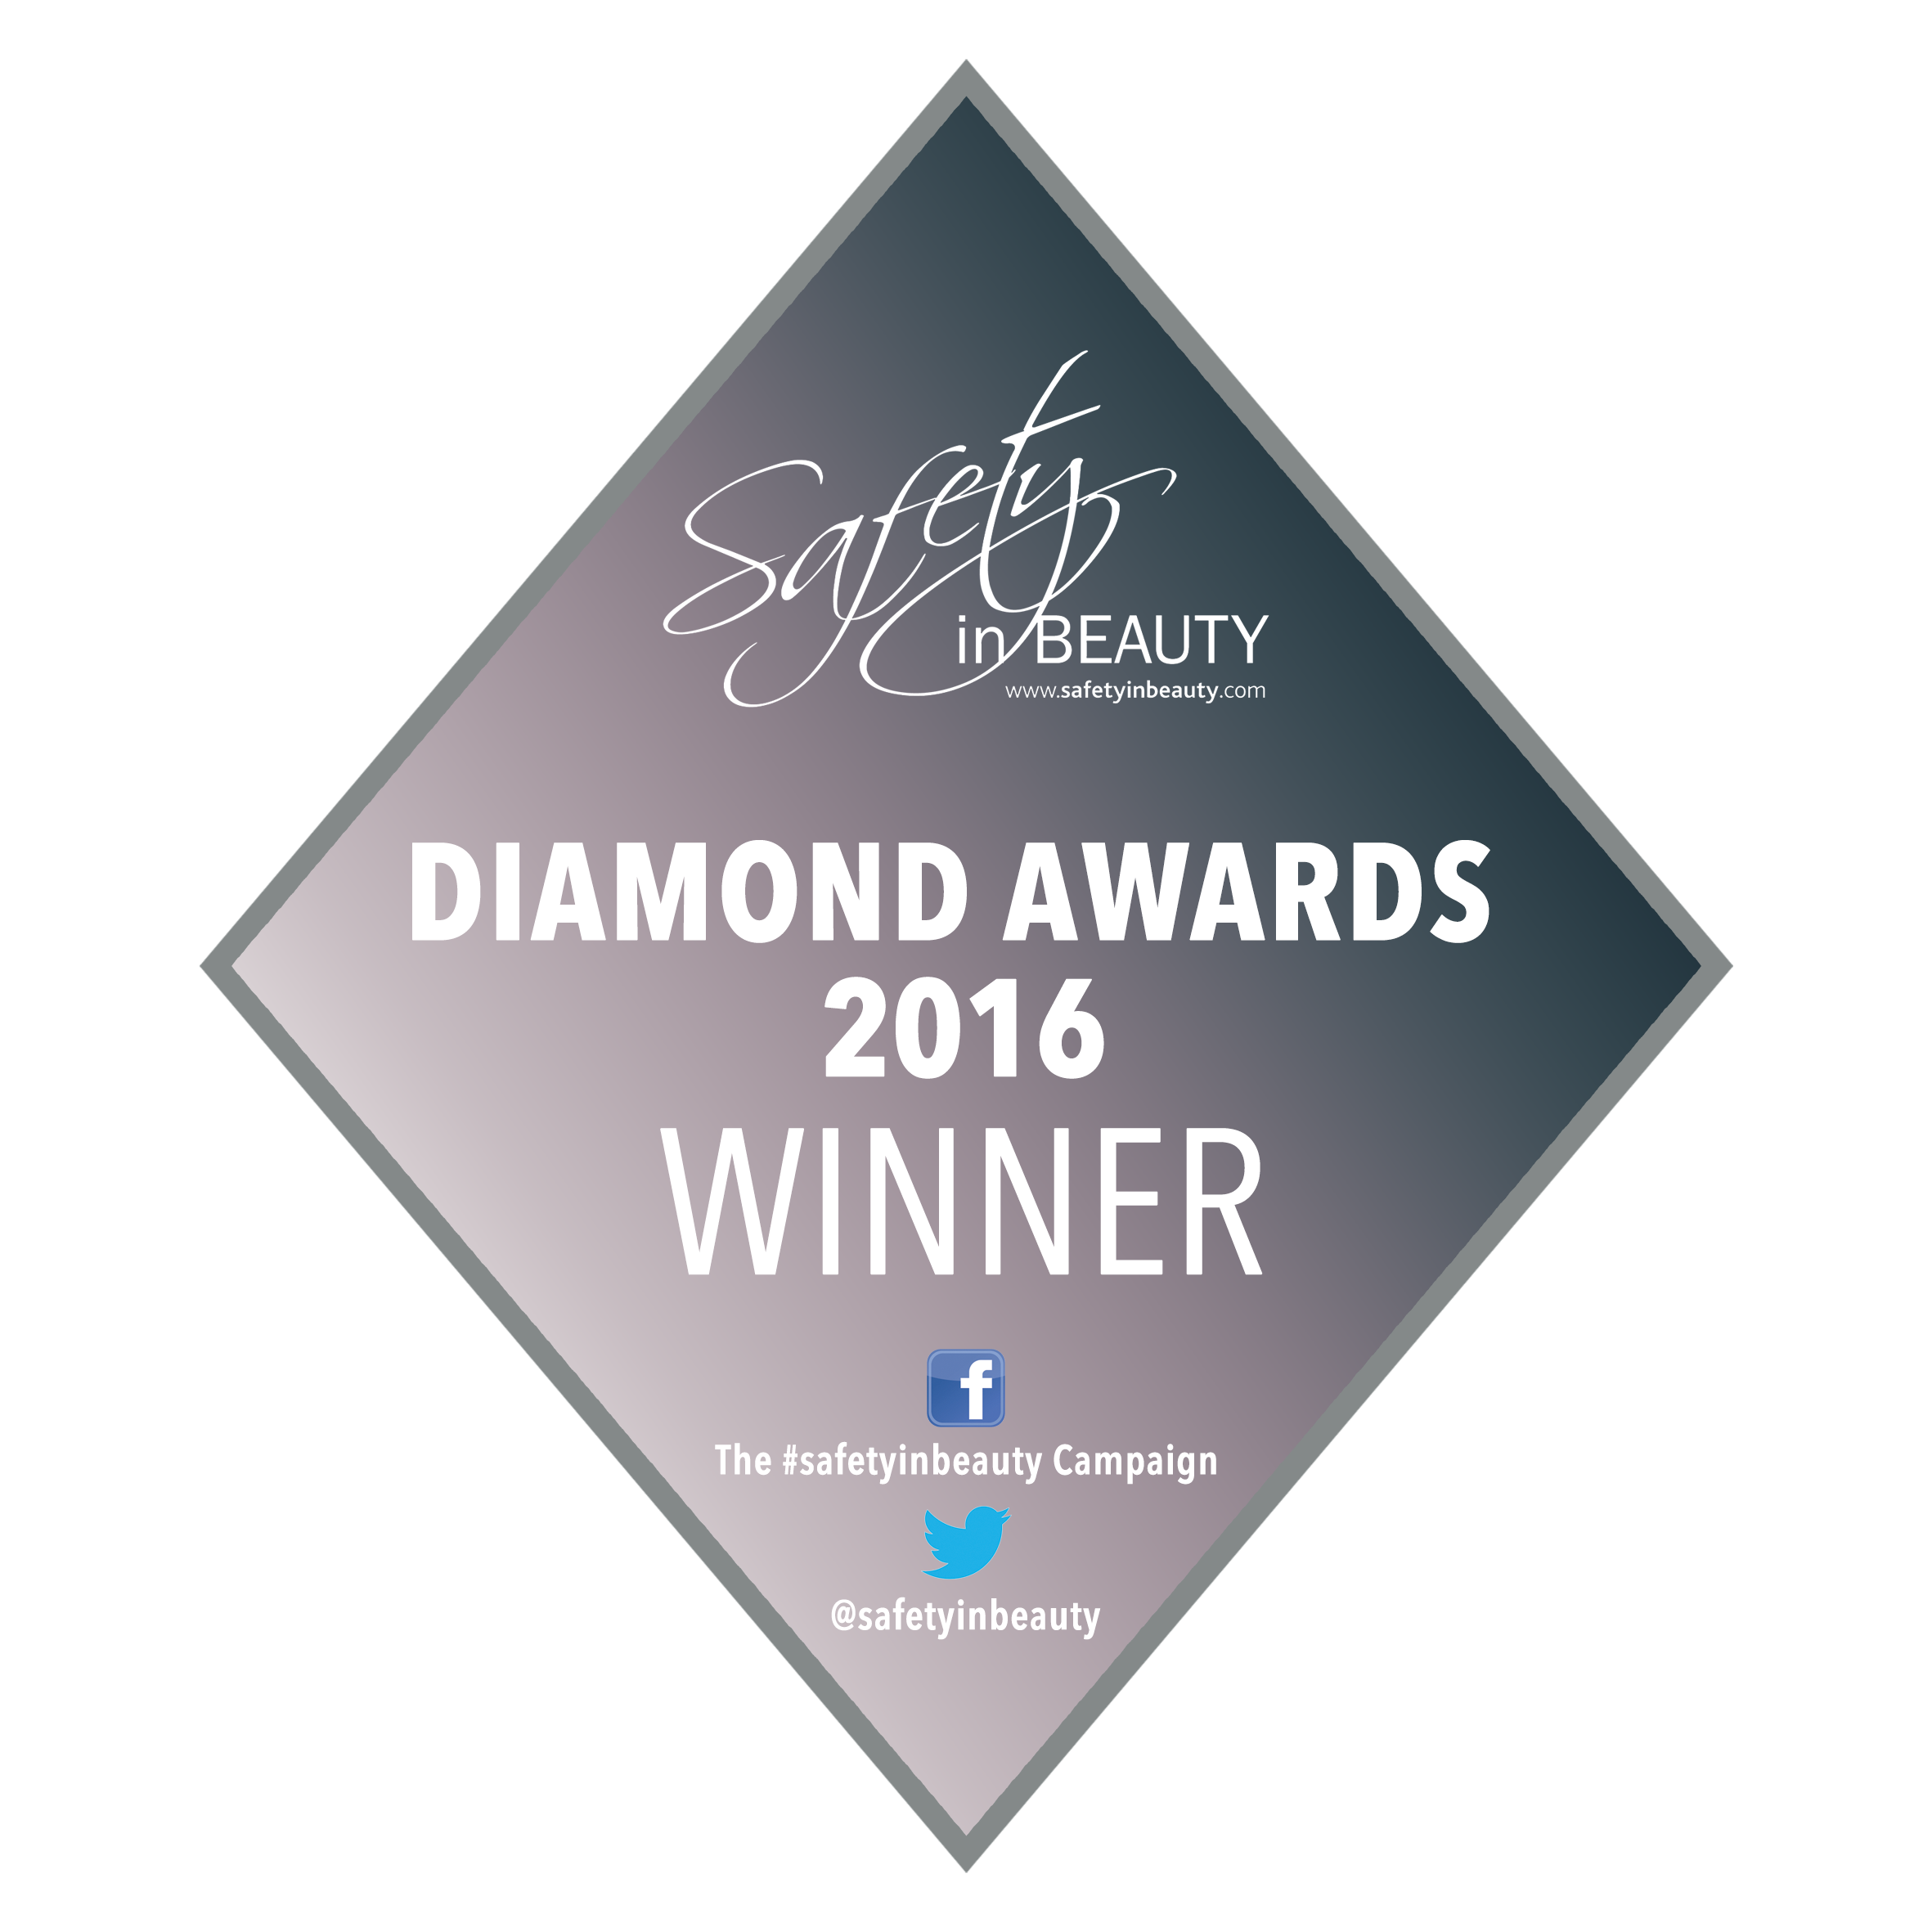 Safety in Beauty Diamond Award 2016